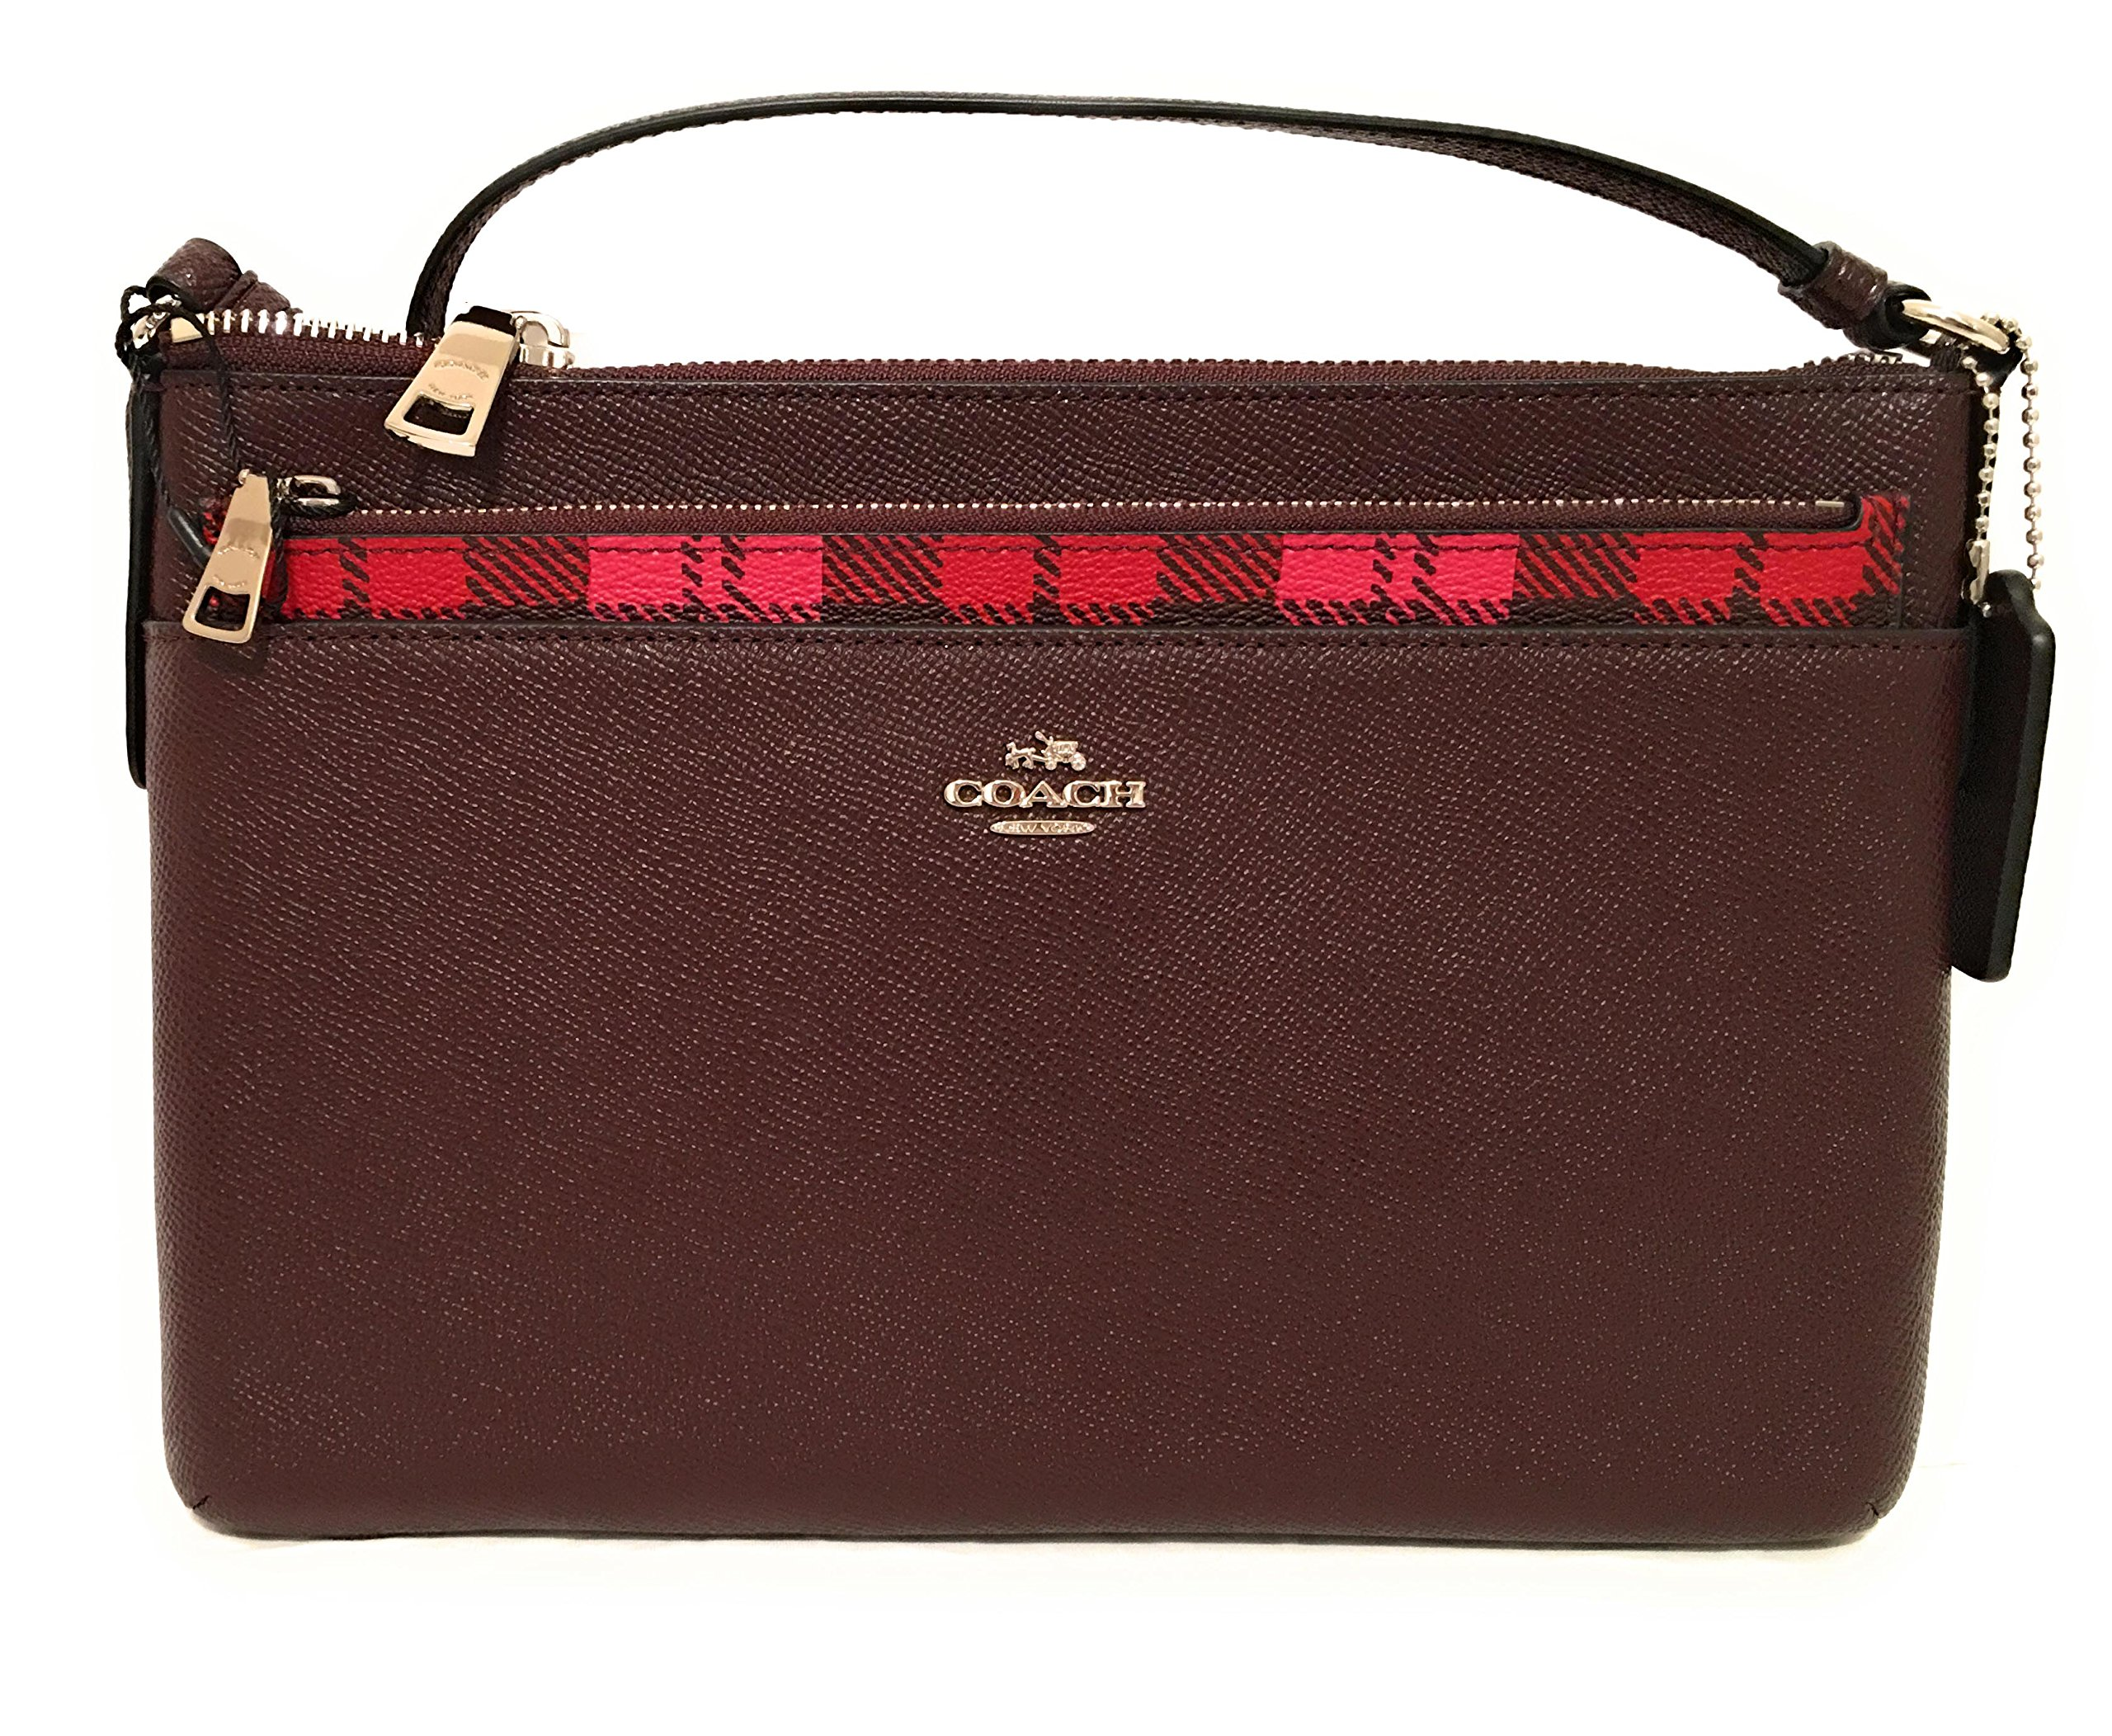 COACH EAST/WEST CROSSBODY WITH POP-UP POUCH WITH WILD PLAID PRINT F22251 Pink Red Multi by Coach